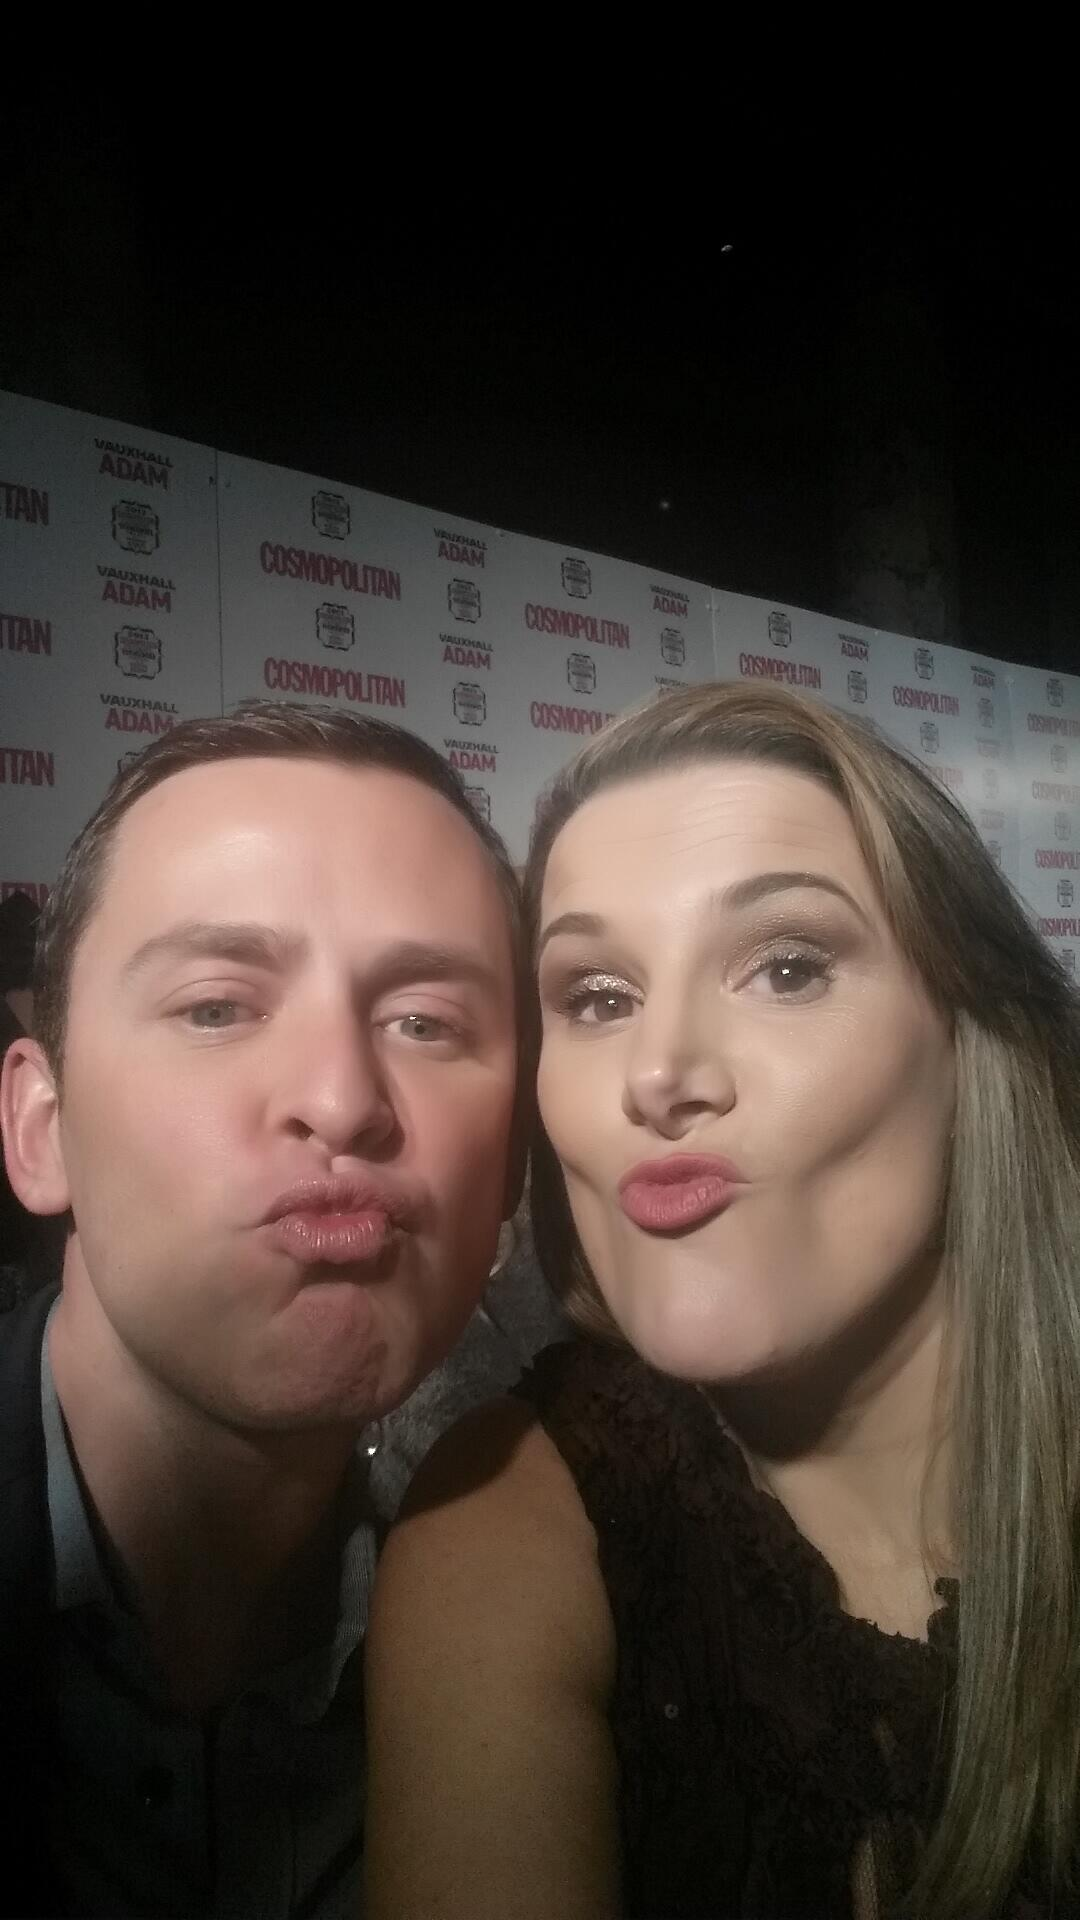 Me and the lovely @scott_mills http://t.co/p0noZHvgE0